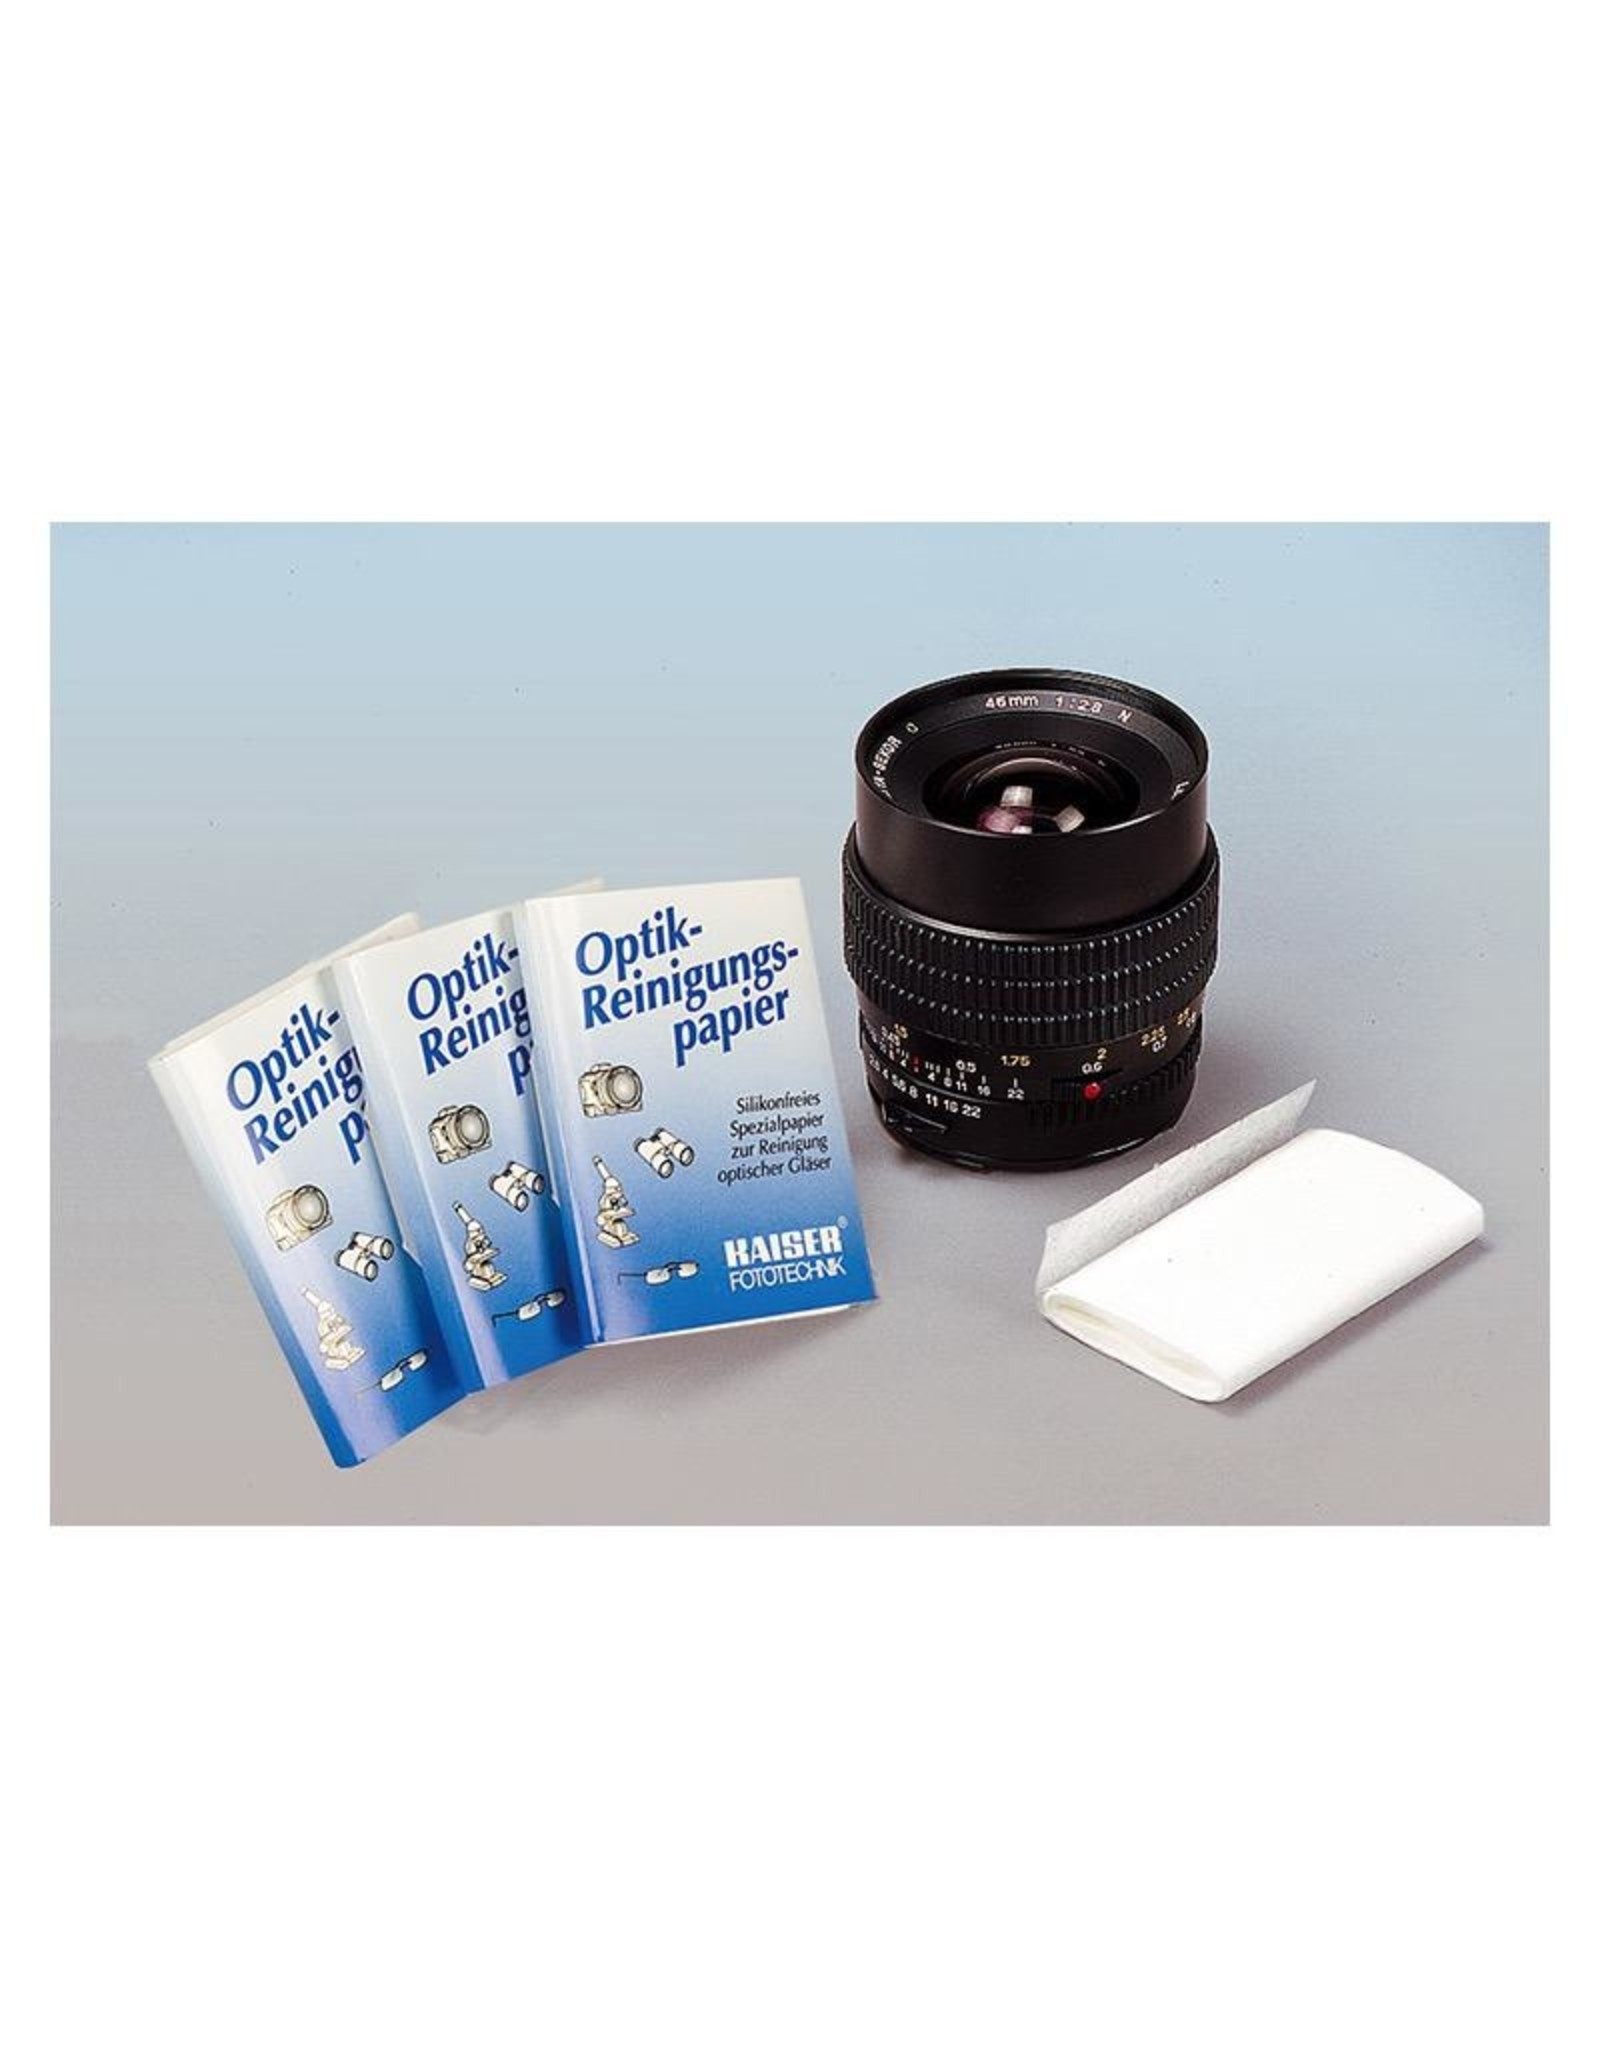 Kaiser Optical Glass Cleaning Paper